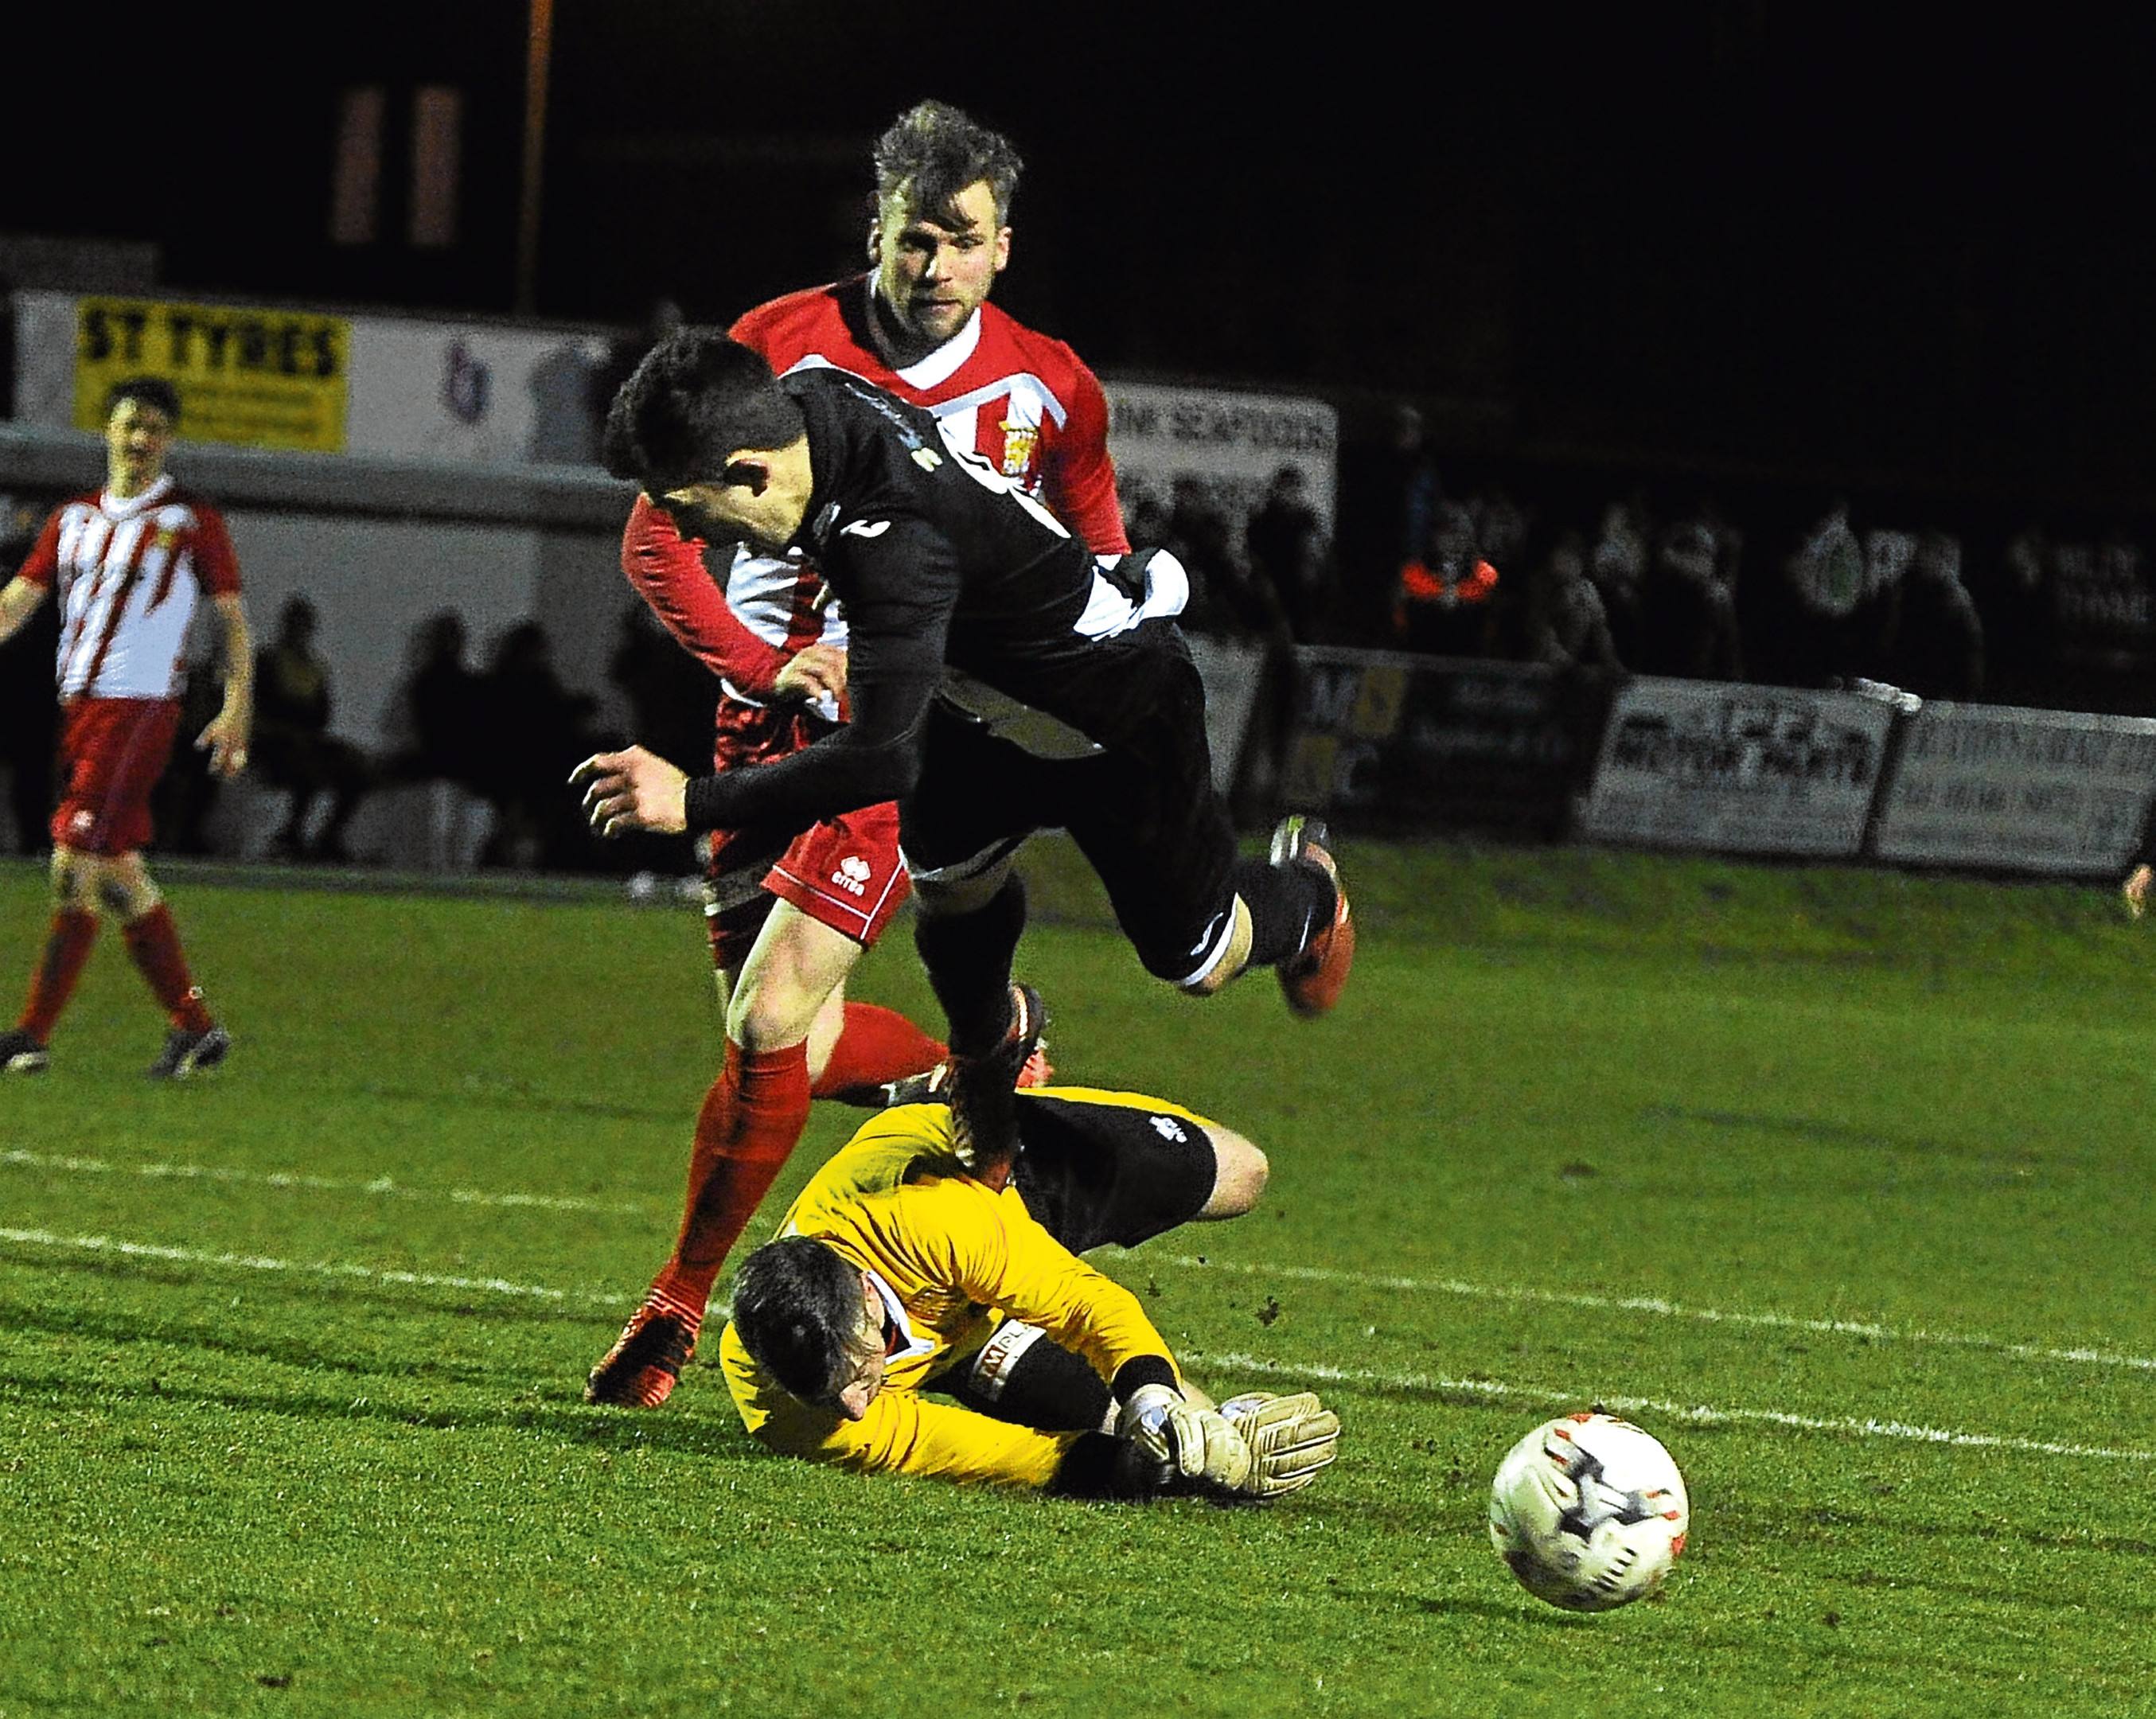 Fraserburgh v Formartine at Bellslea, Fraserburgh: In the picture William West  is sent flying by keeper Kevin Main for a penalty for Fraserburgh.